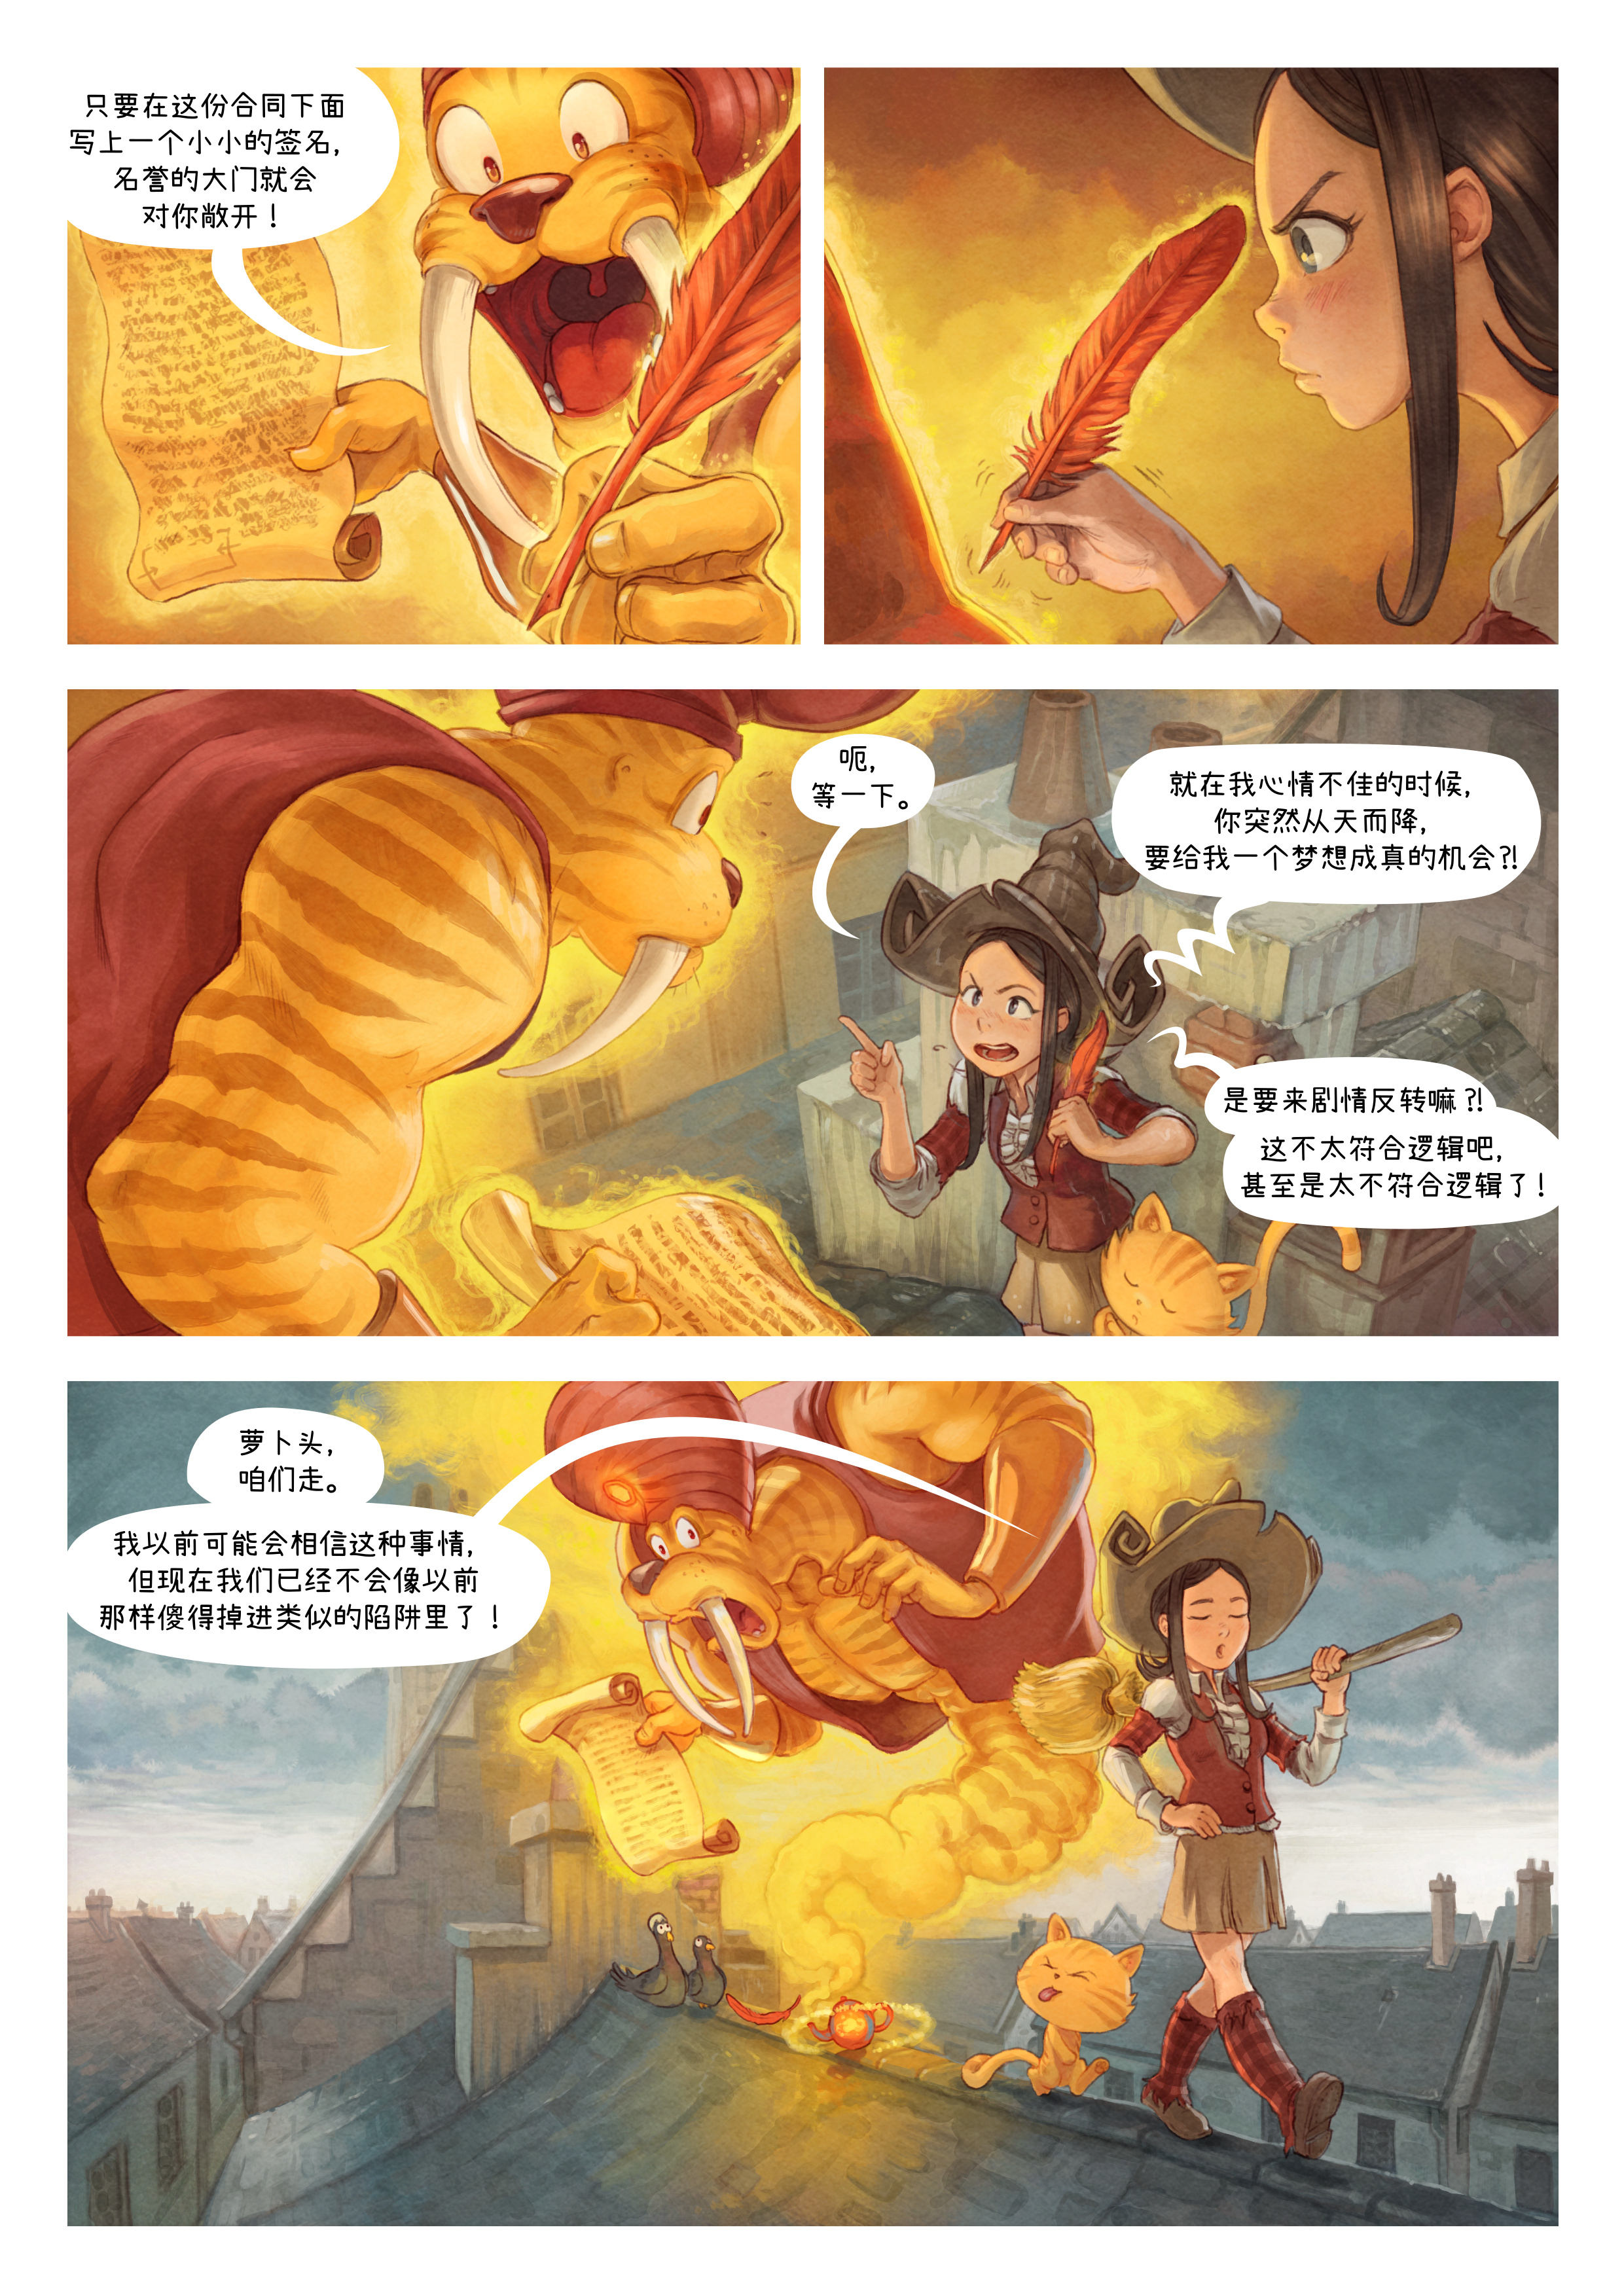 A webcomic page of Pepper&Carrot, 漫画全集 23 [cn], 页面 5